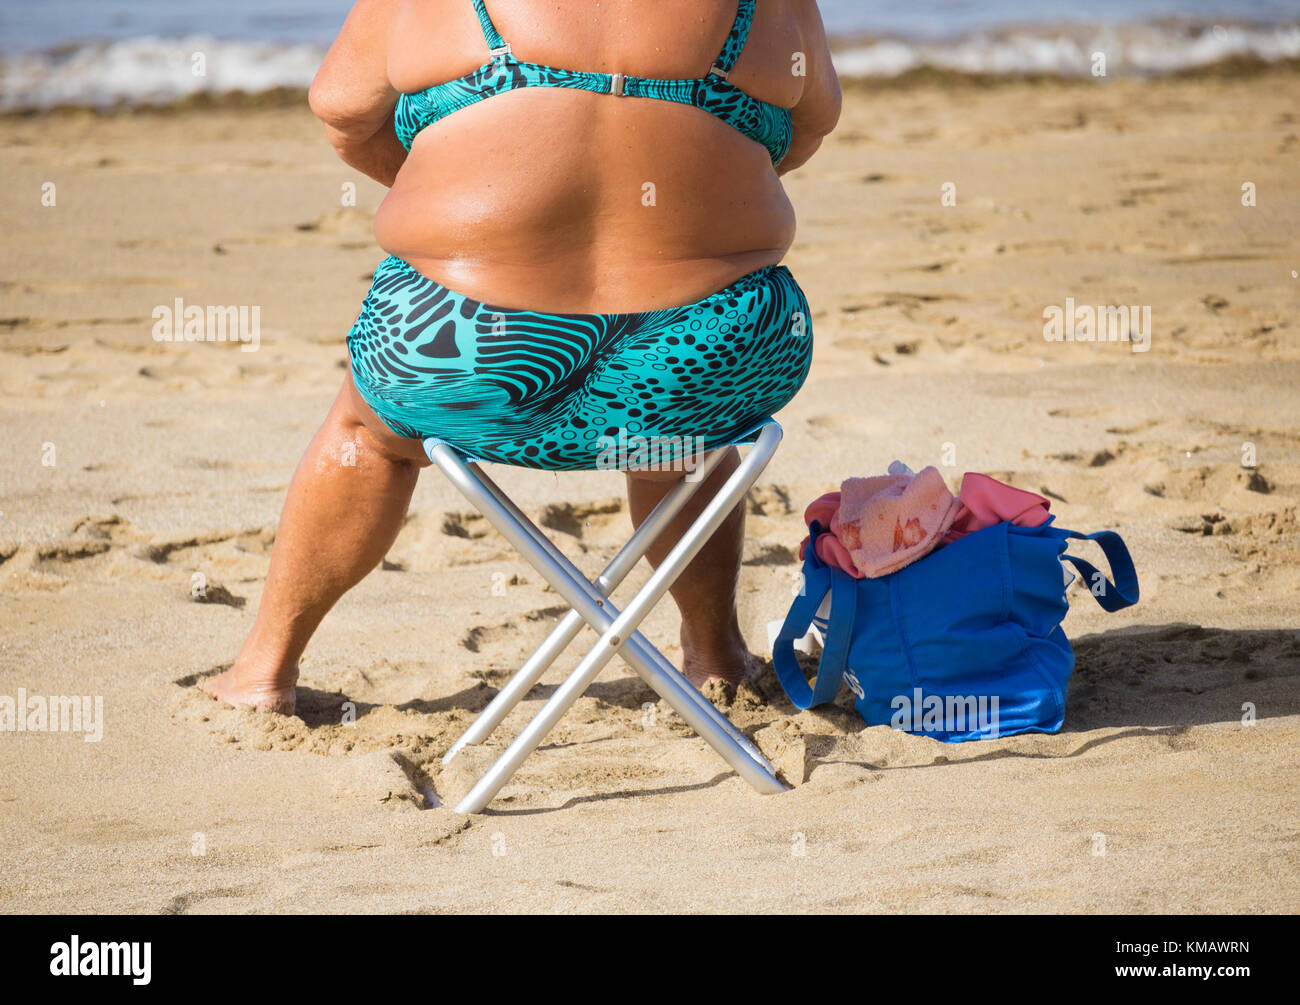 big bum woman stock photos & big bum woman stock images - alamy